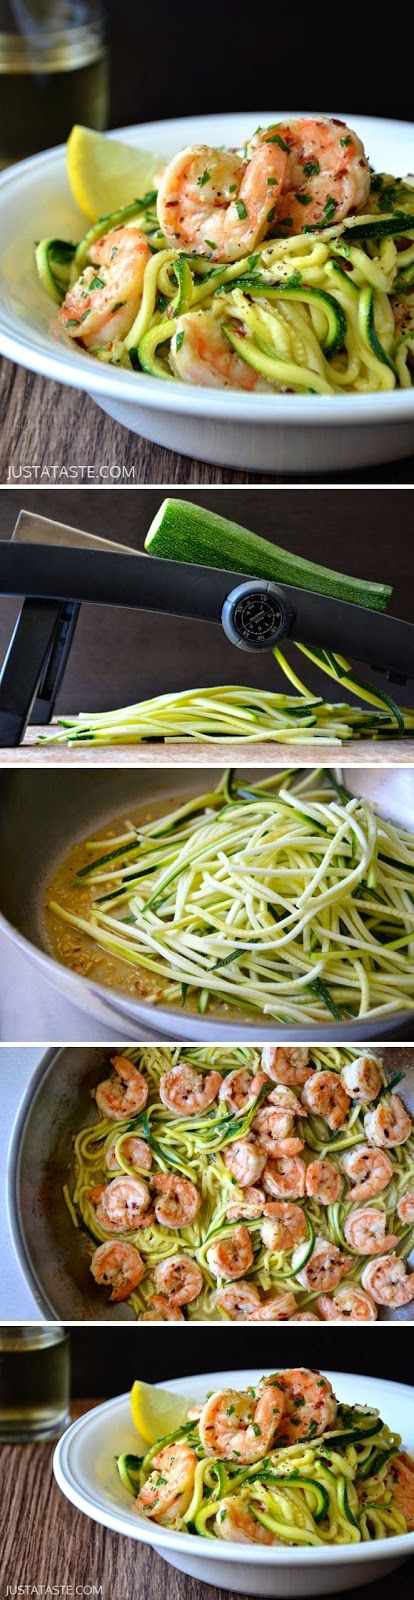 Zucchini Noodle Pasta // low carb, packed with protein and fiber #healthy